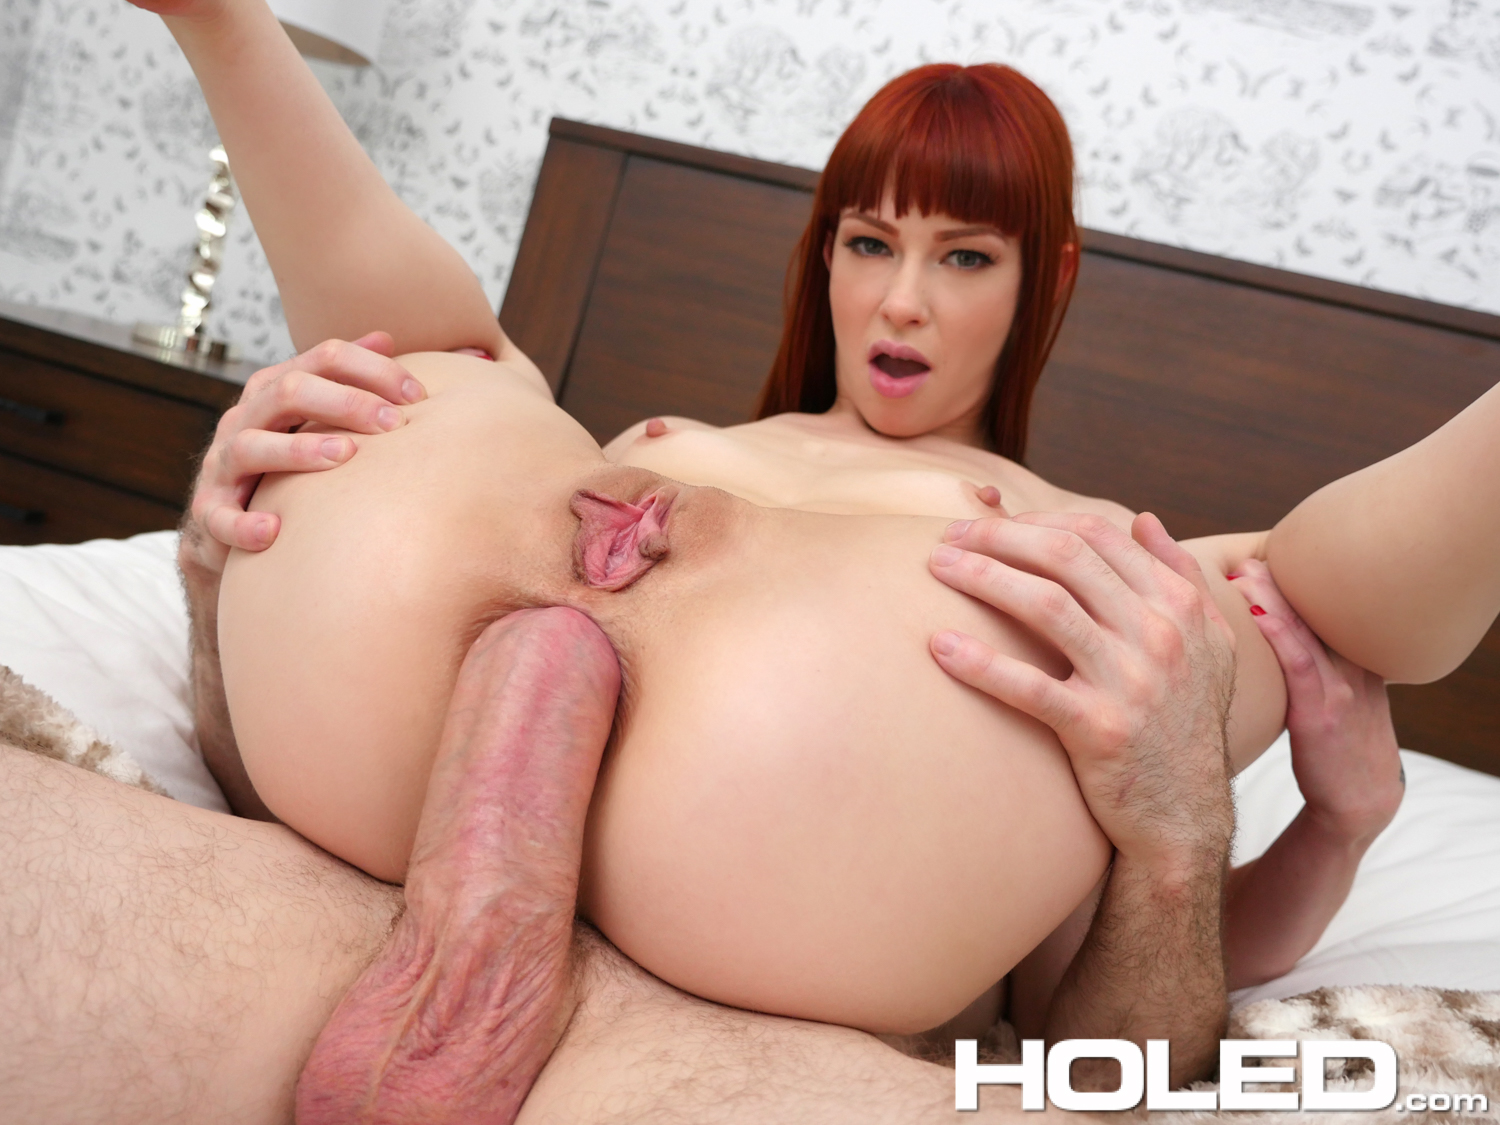 Anal Video holed alexa nova in foreign exchange anal - anal sex tube